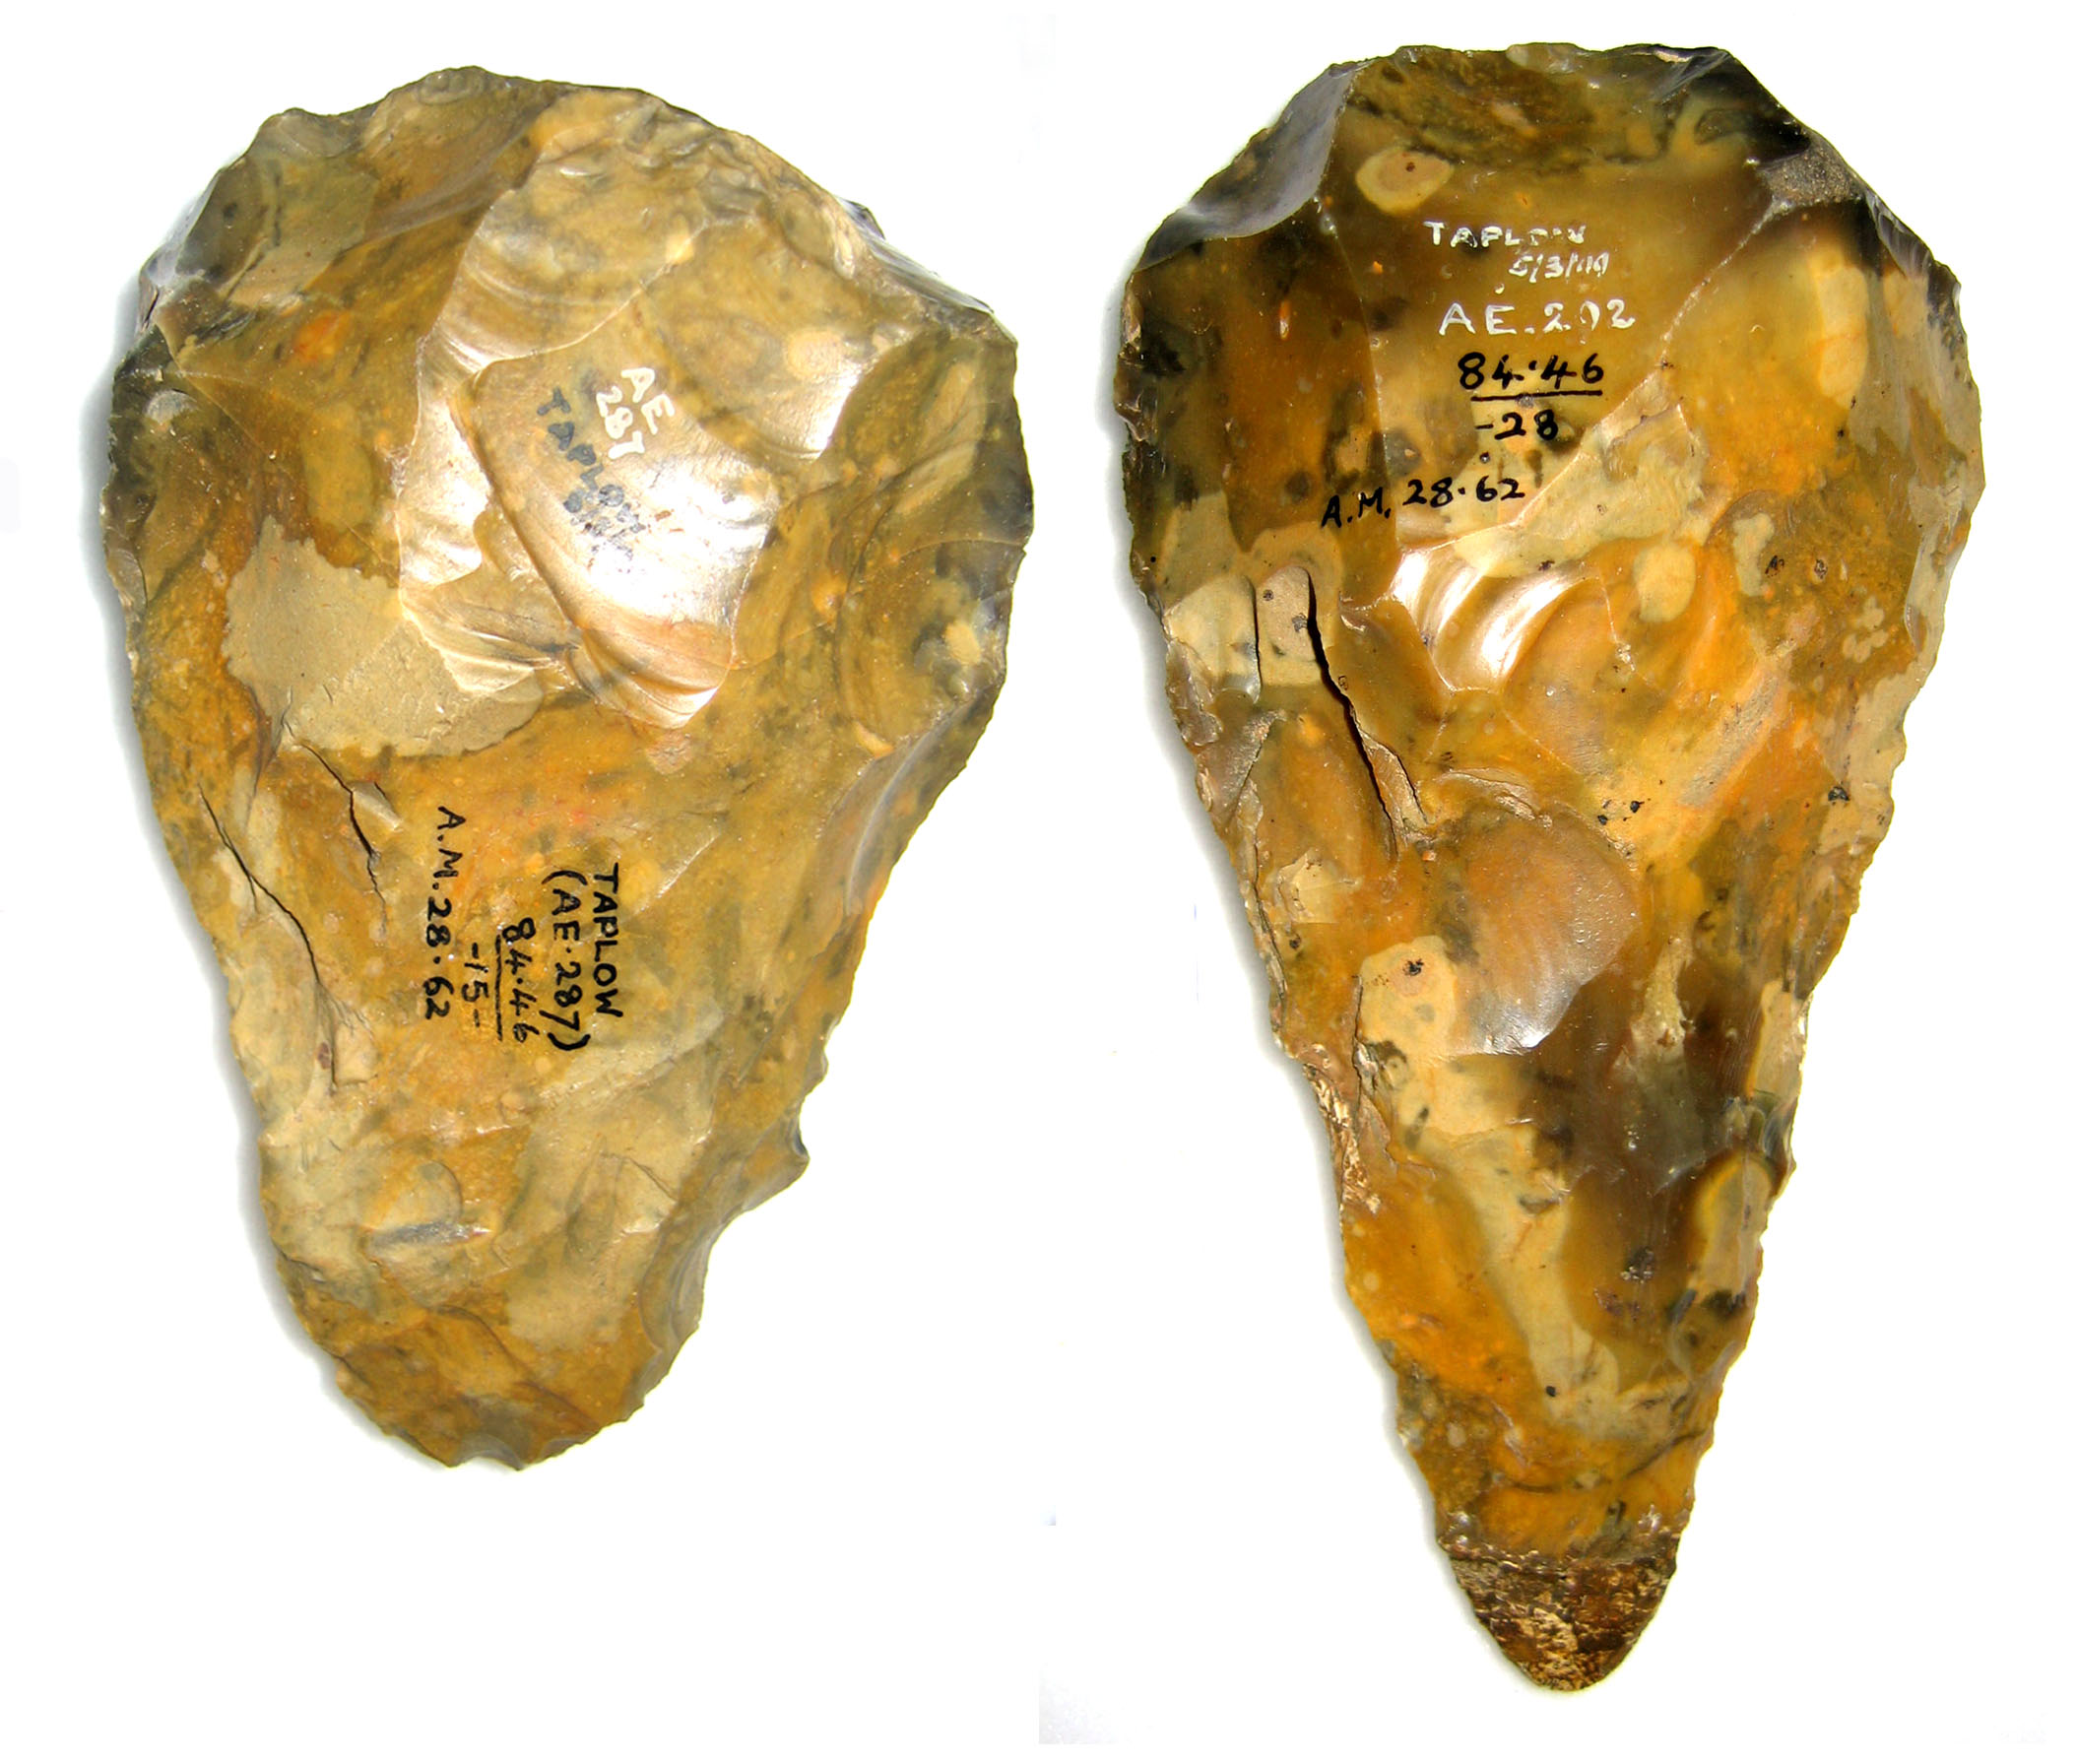 Two stone age hand axes found at Taplow